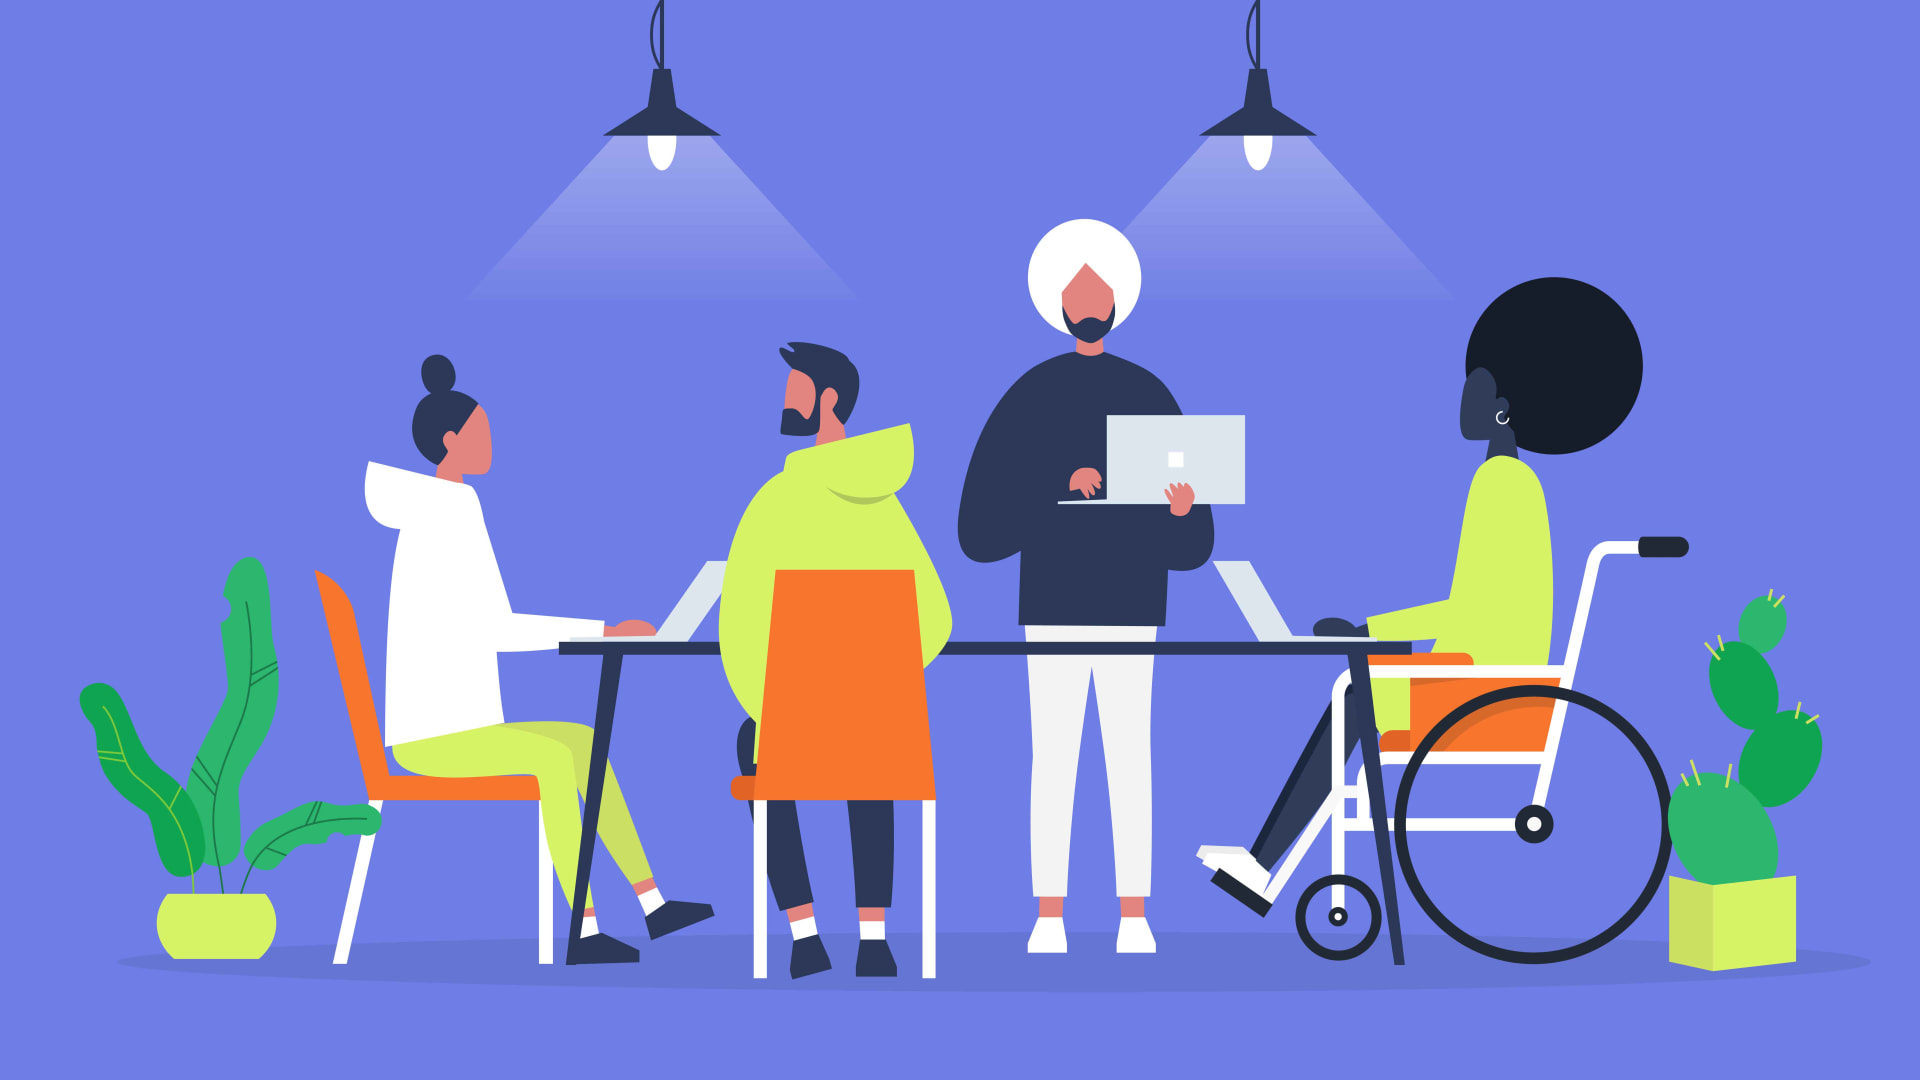 4 Things Every Business Can Do in 2021 to Hire Inclusively